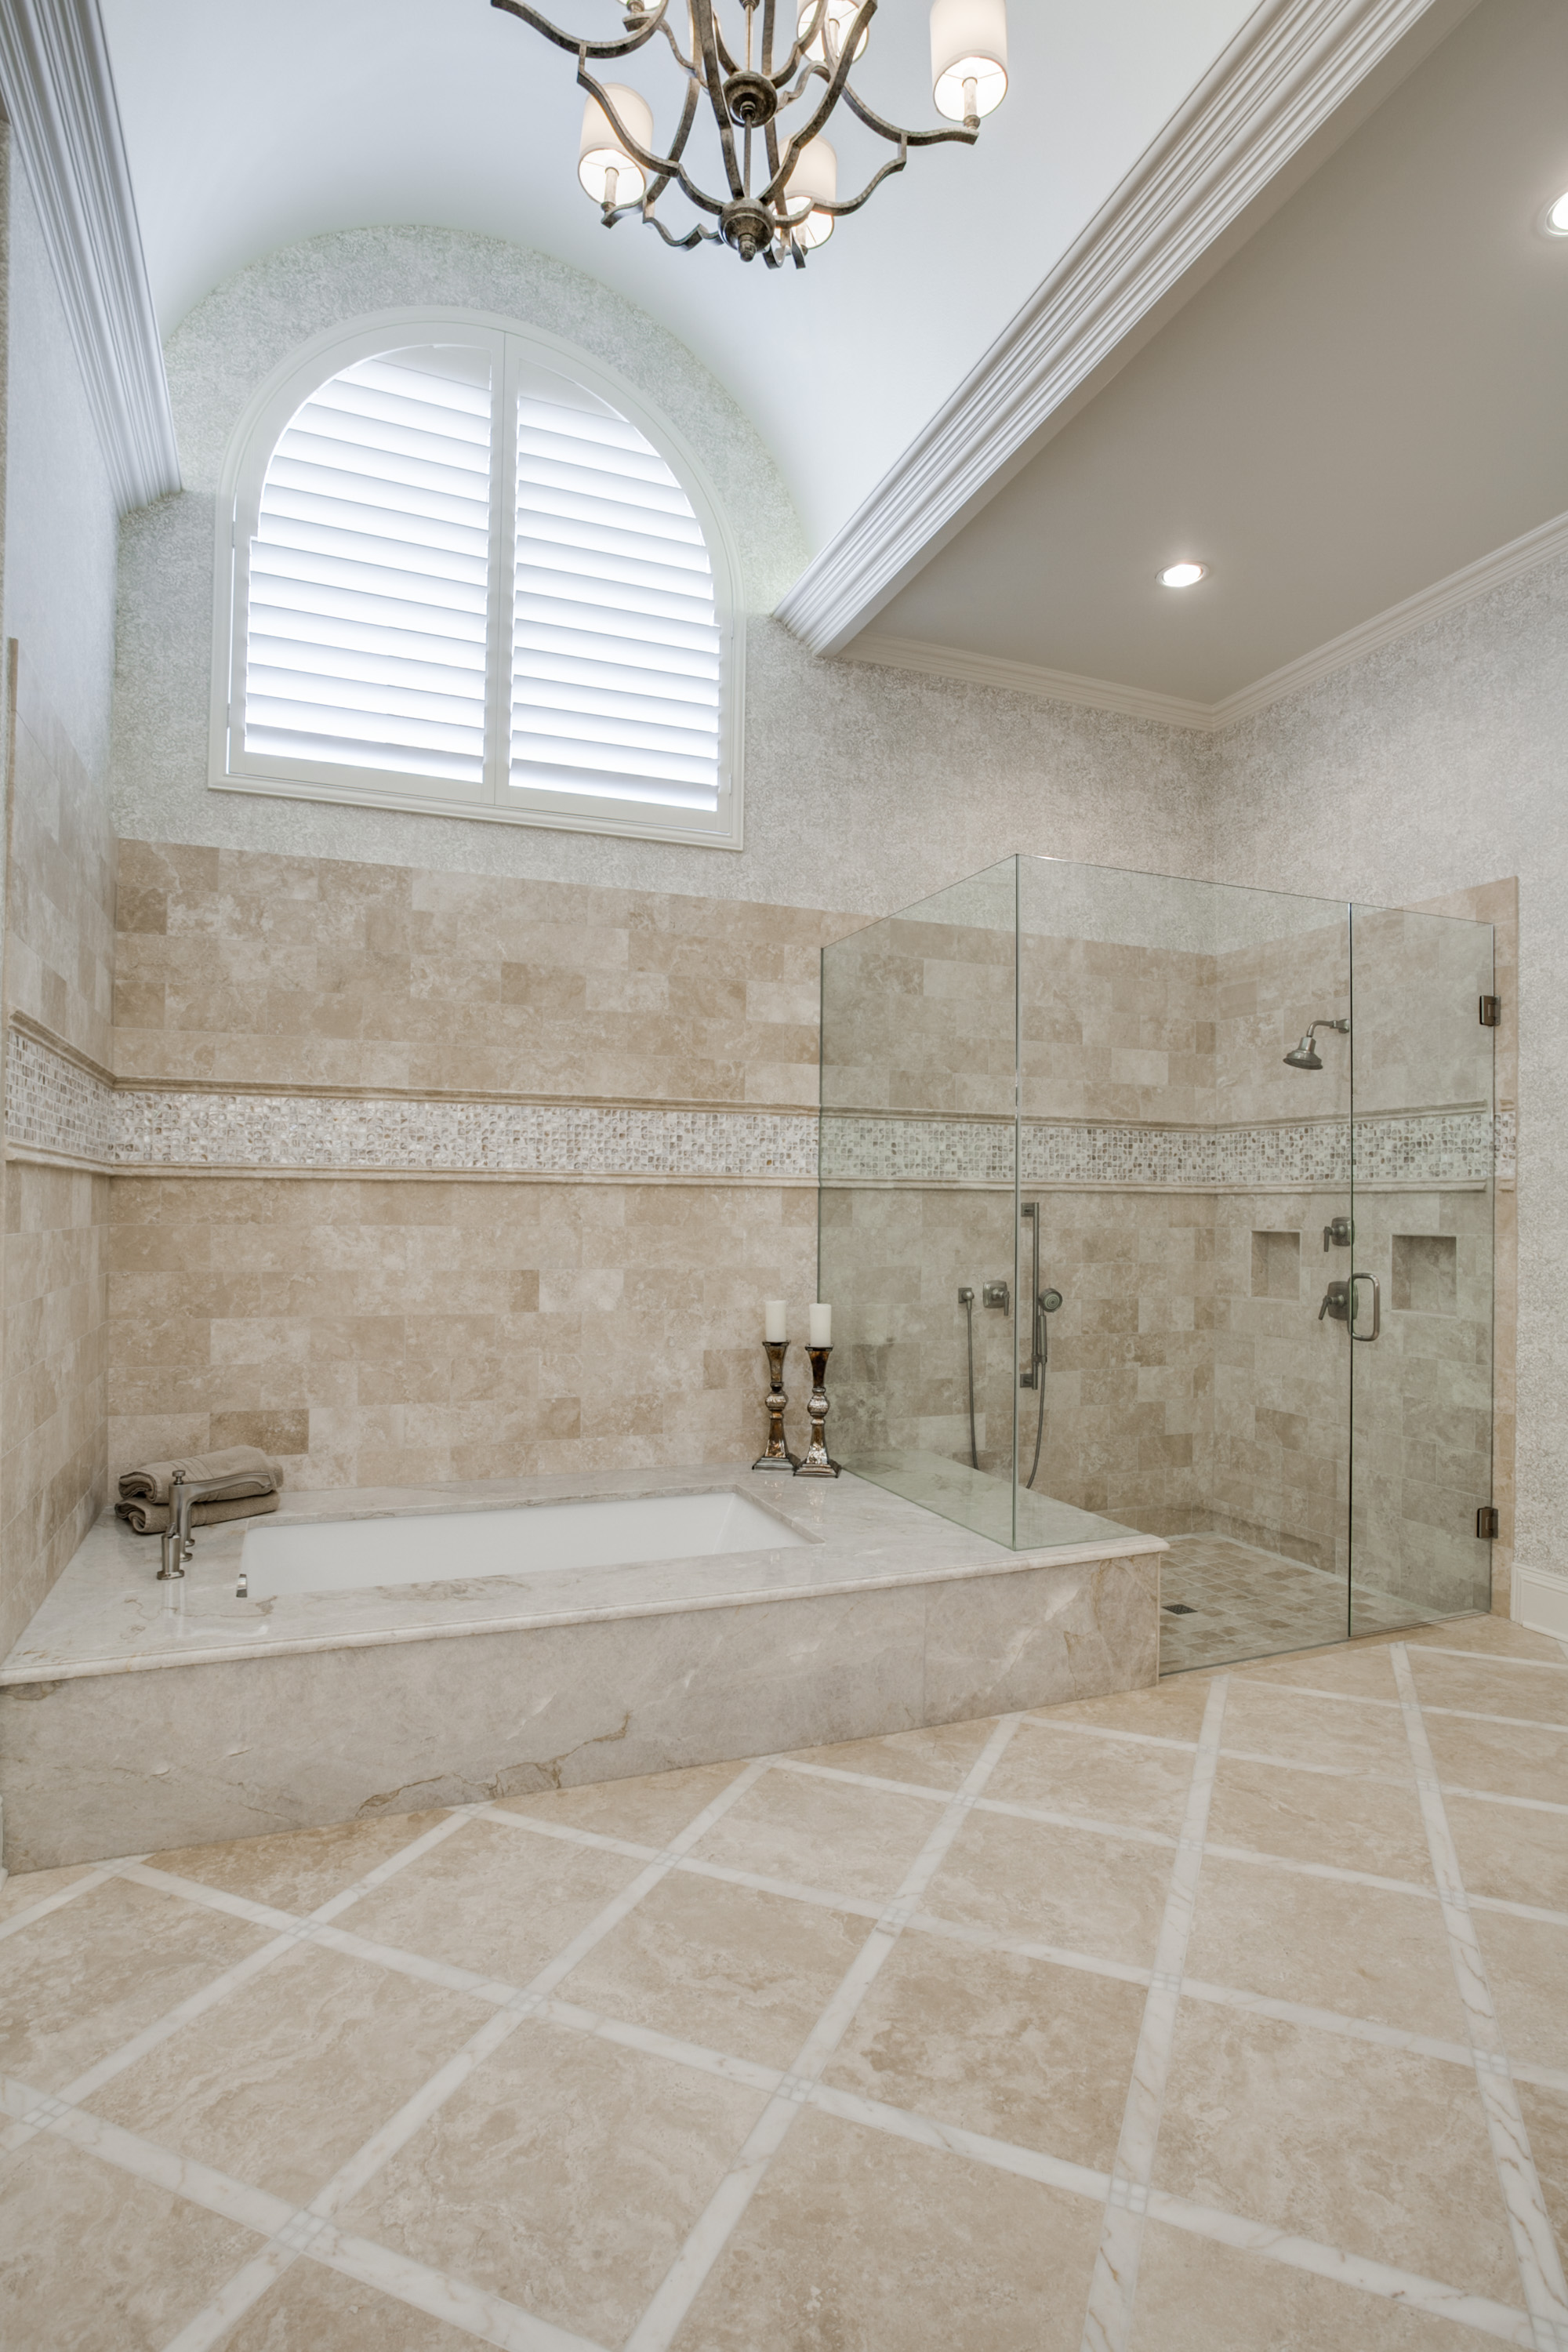 J Williams Construction  Remodeling Inc  Our Work  Bathroom Remodeling  Home Kitchen